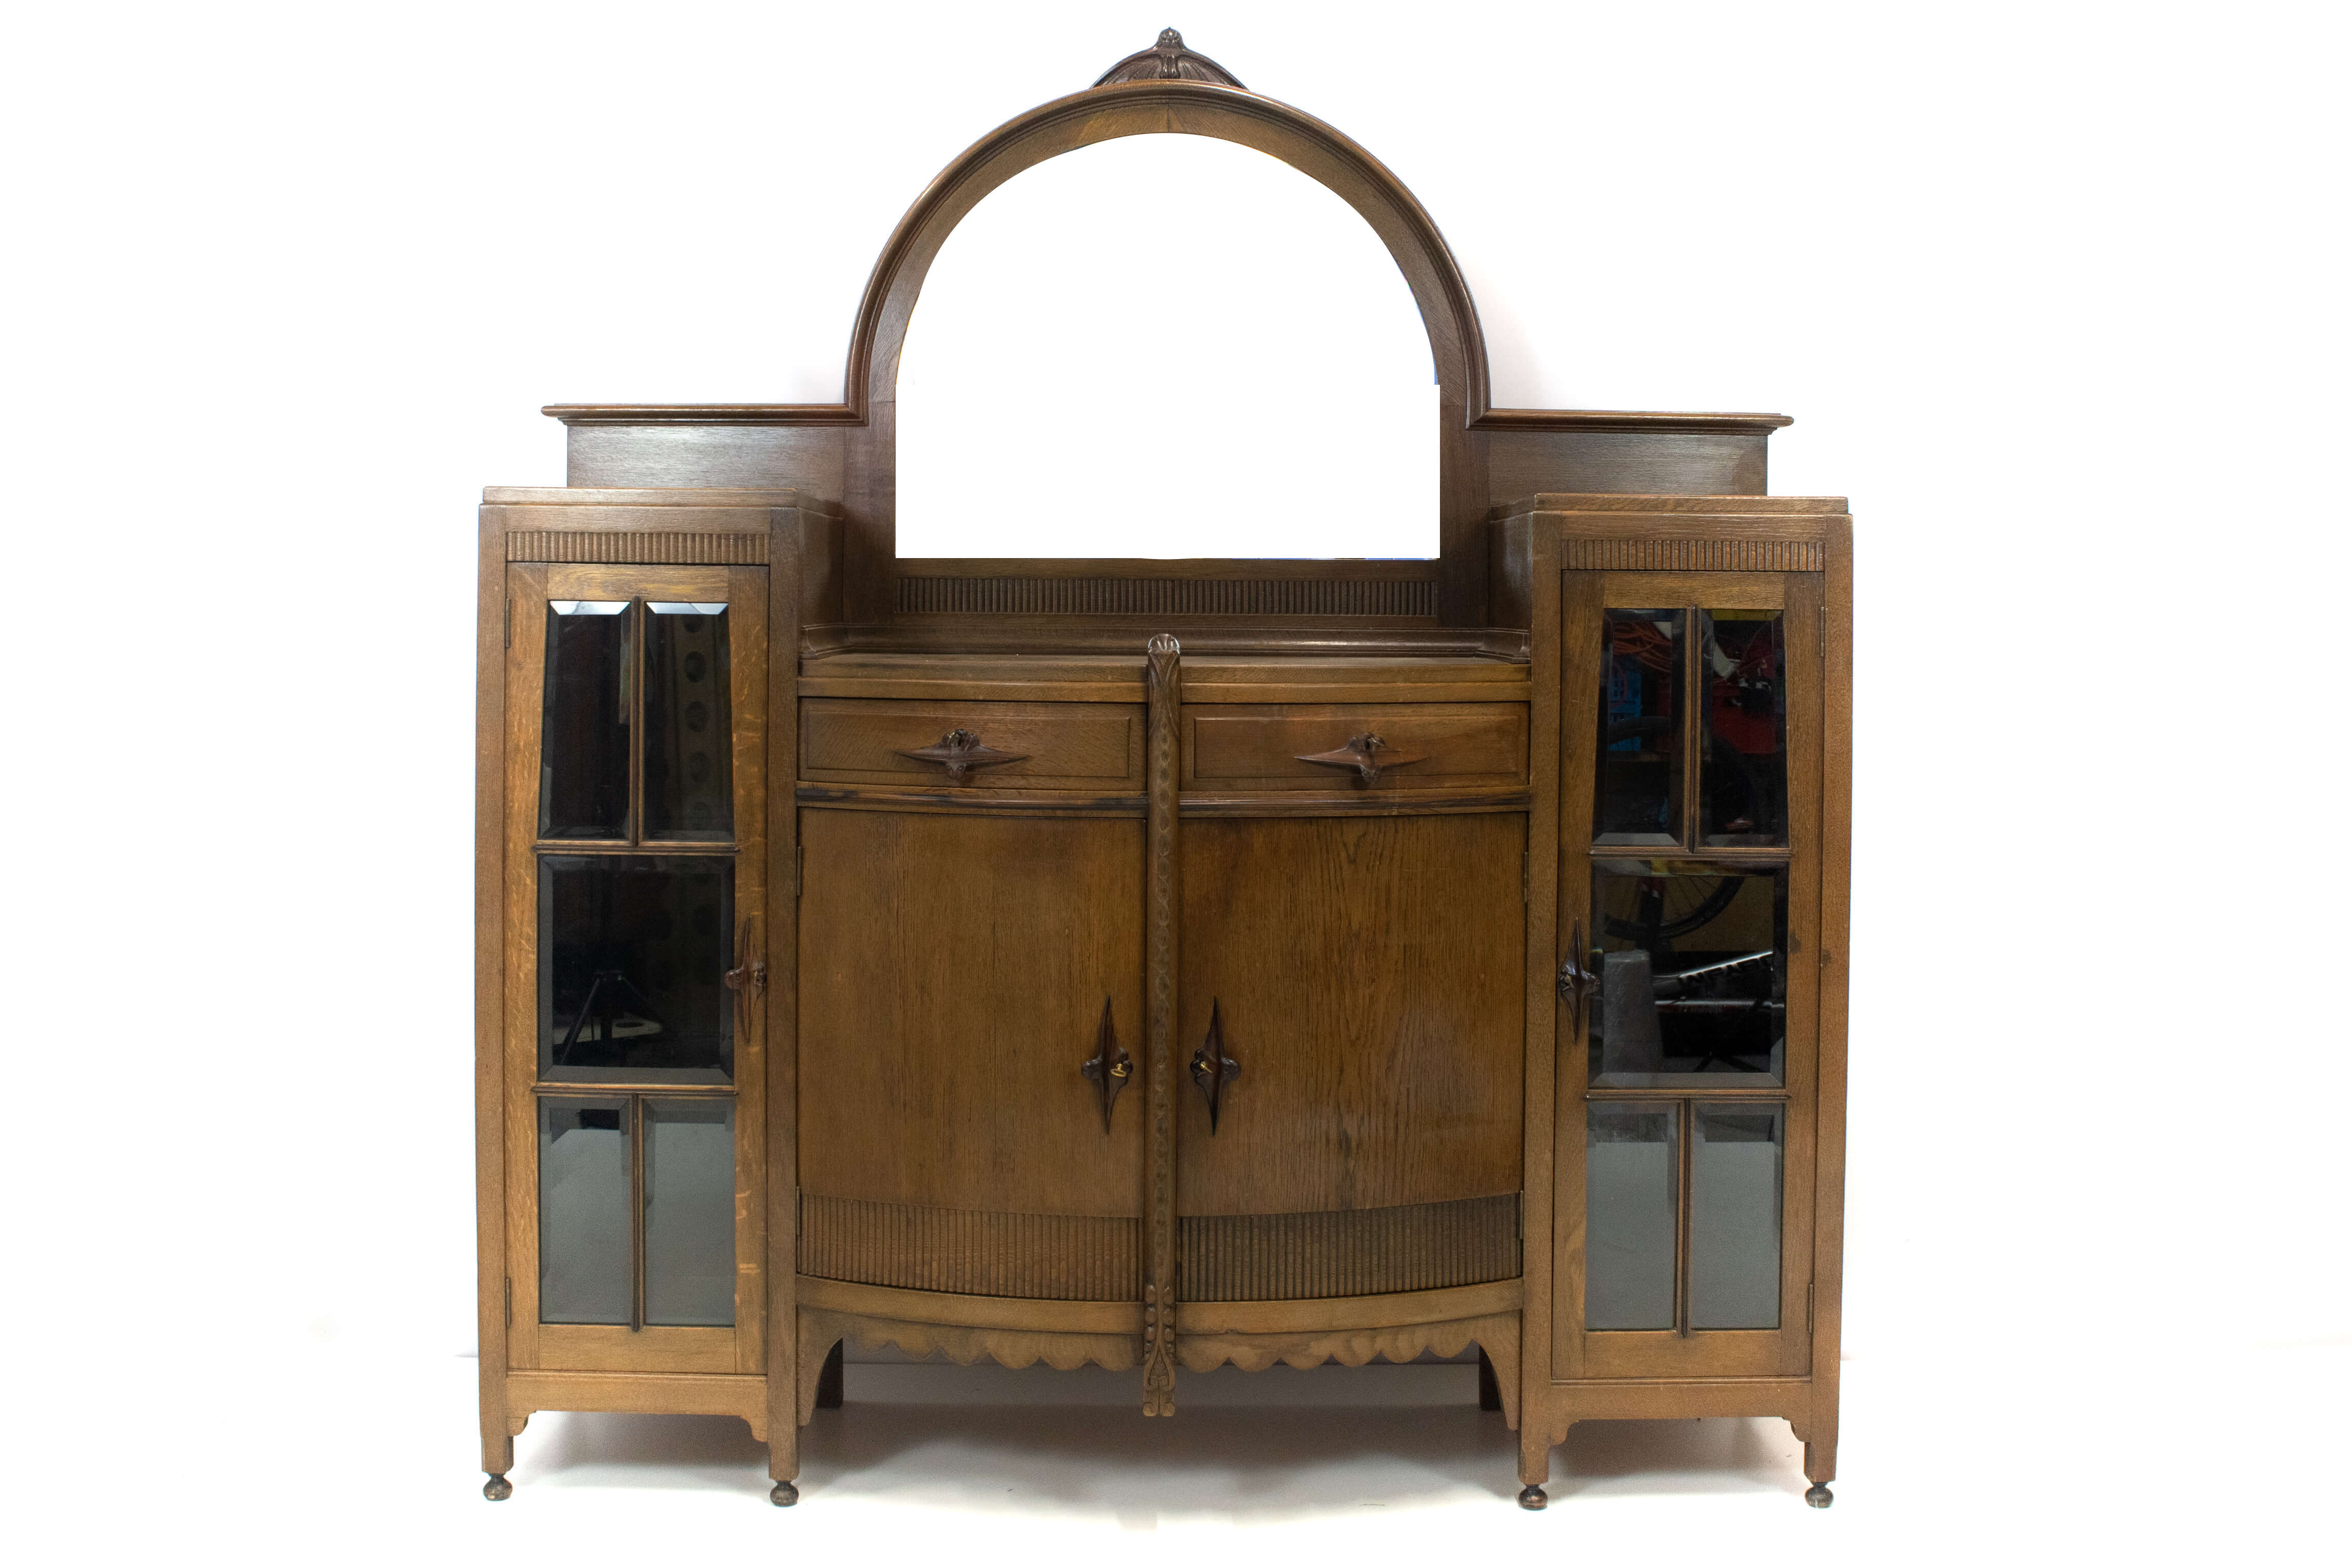 Art Deco Amsterdam School Bar Cabinet by J.Th. Drilling, The Netherlands 1920s